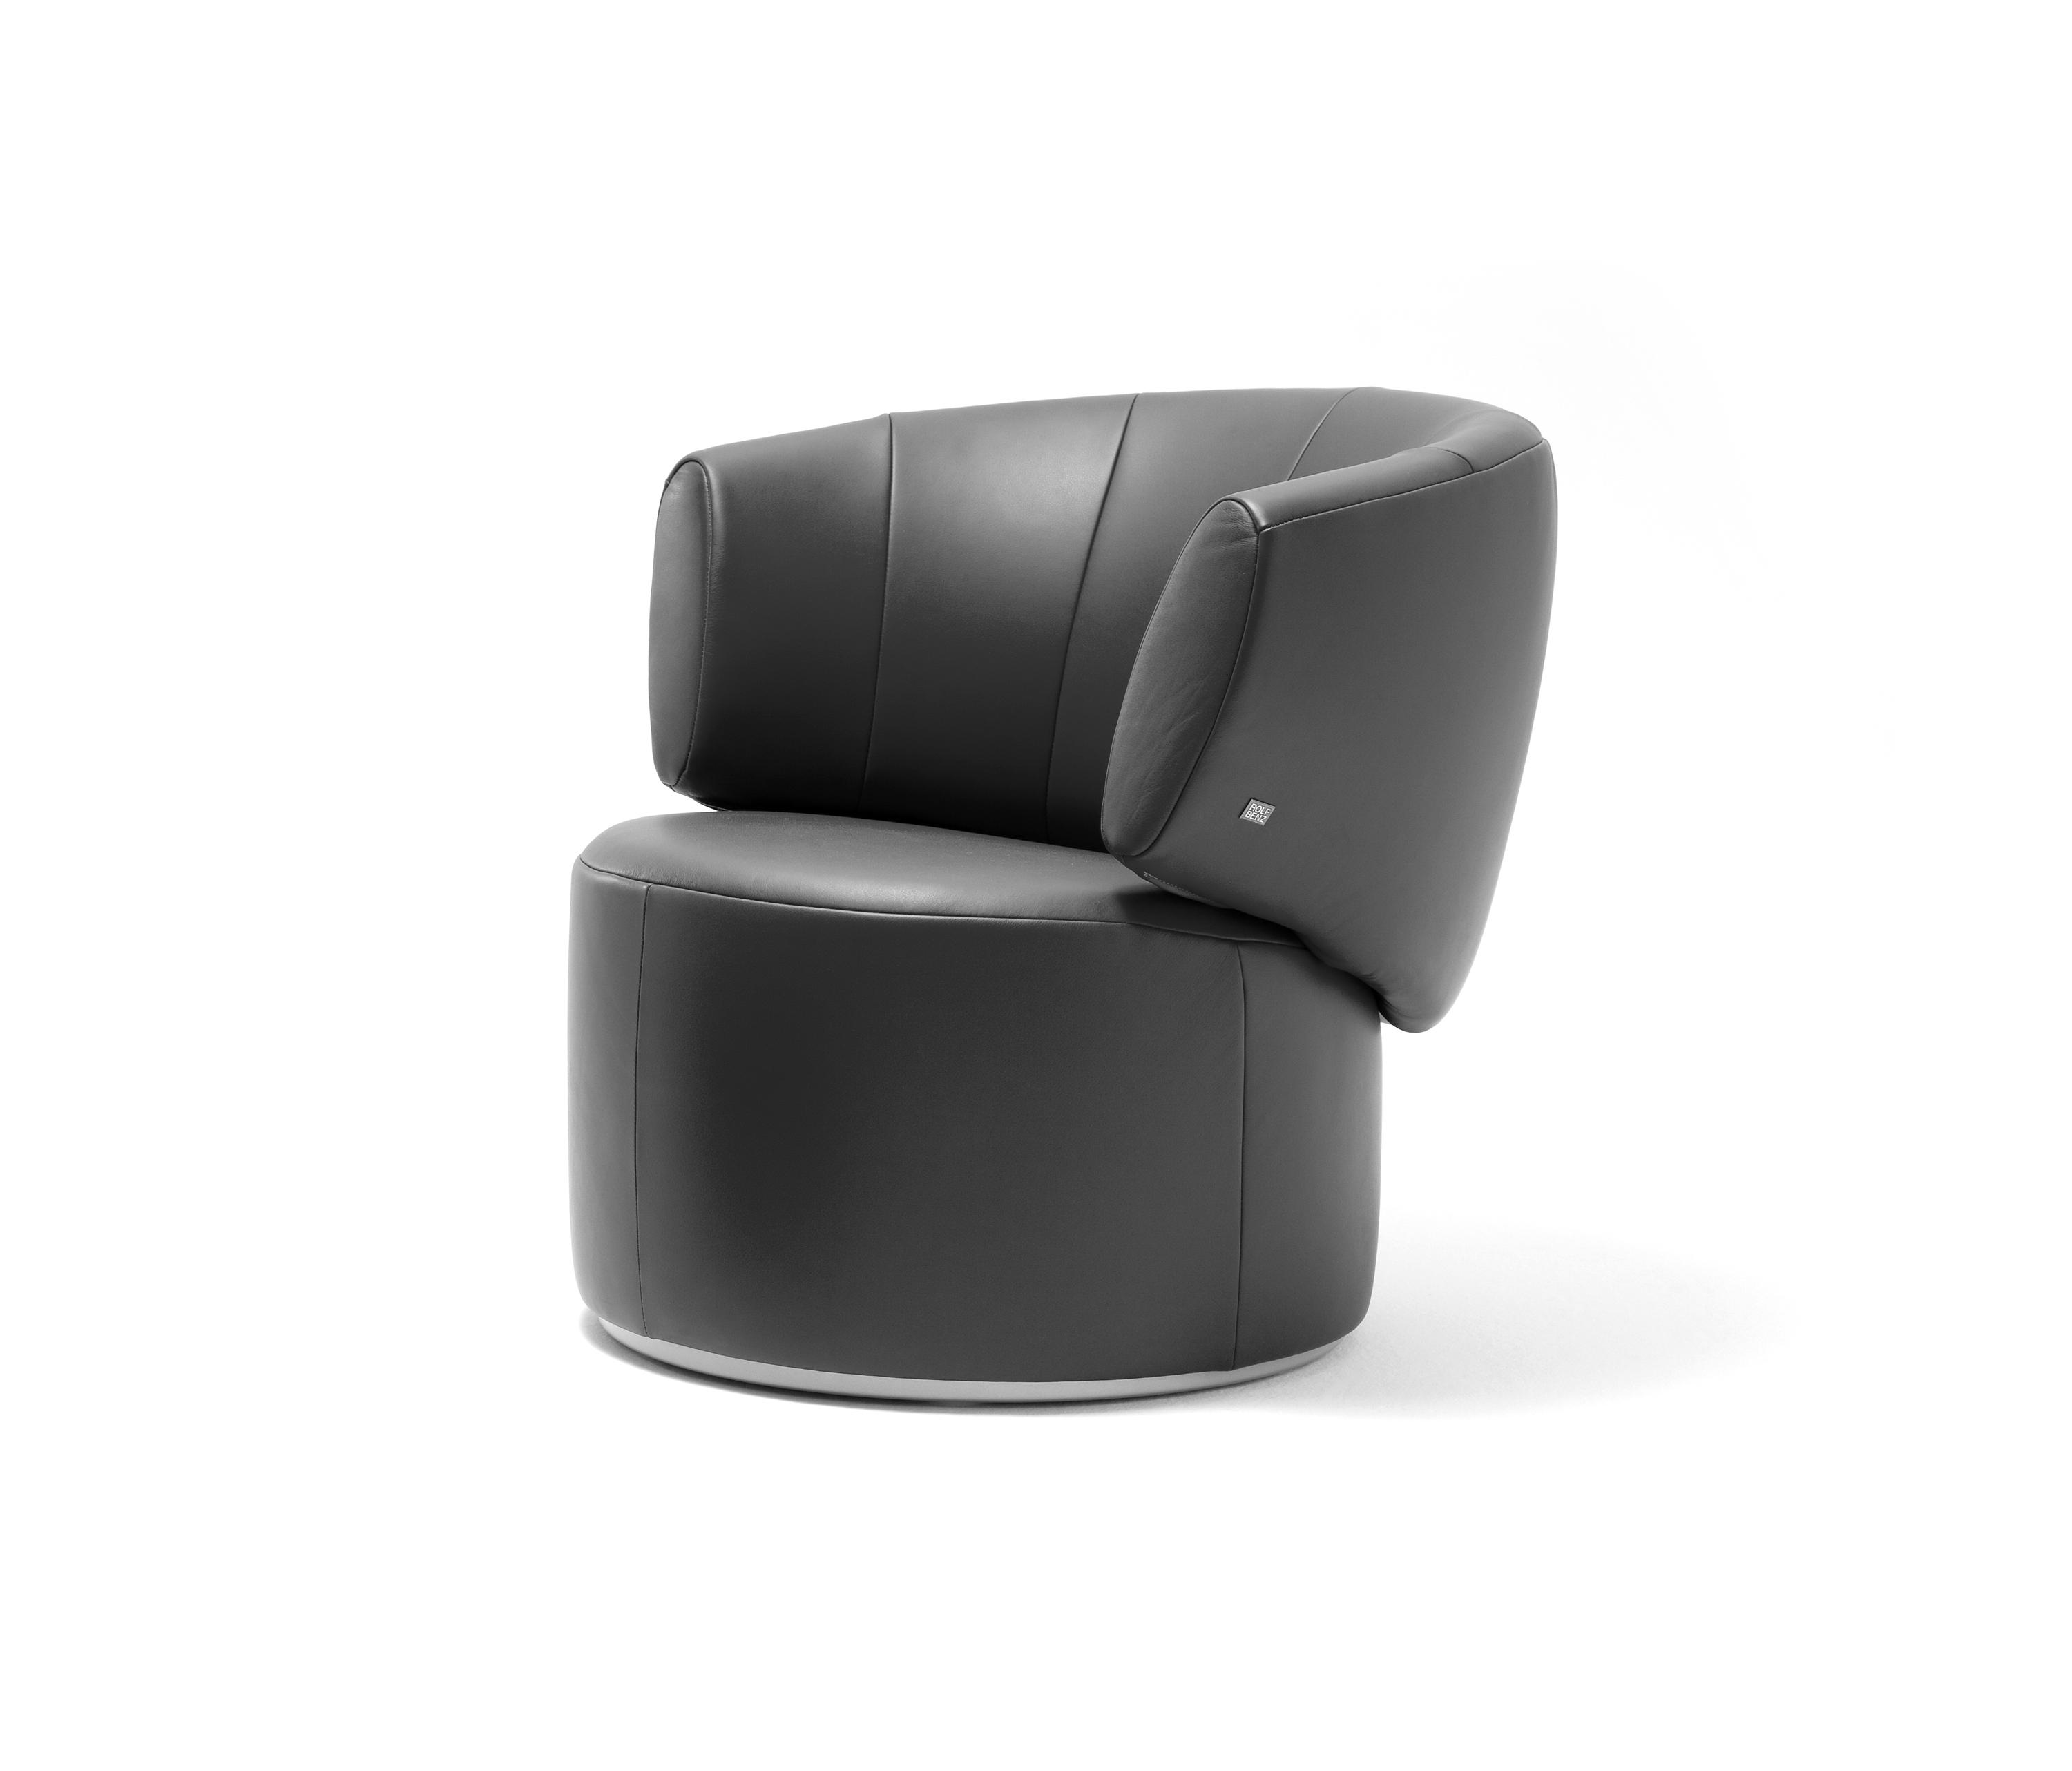 Rolf Benz Nova Rolf Benz 684 Armchairs From Rolf Benz Architonic